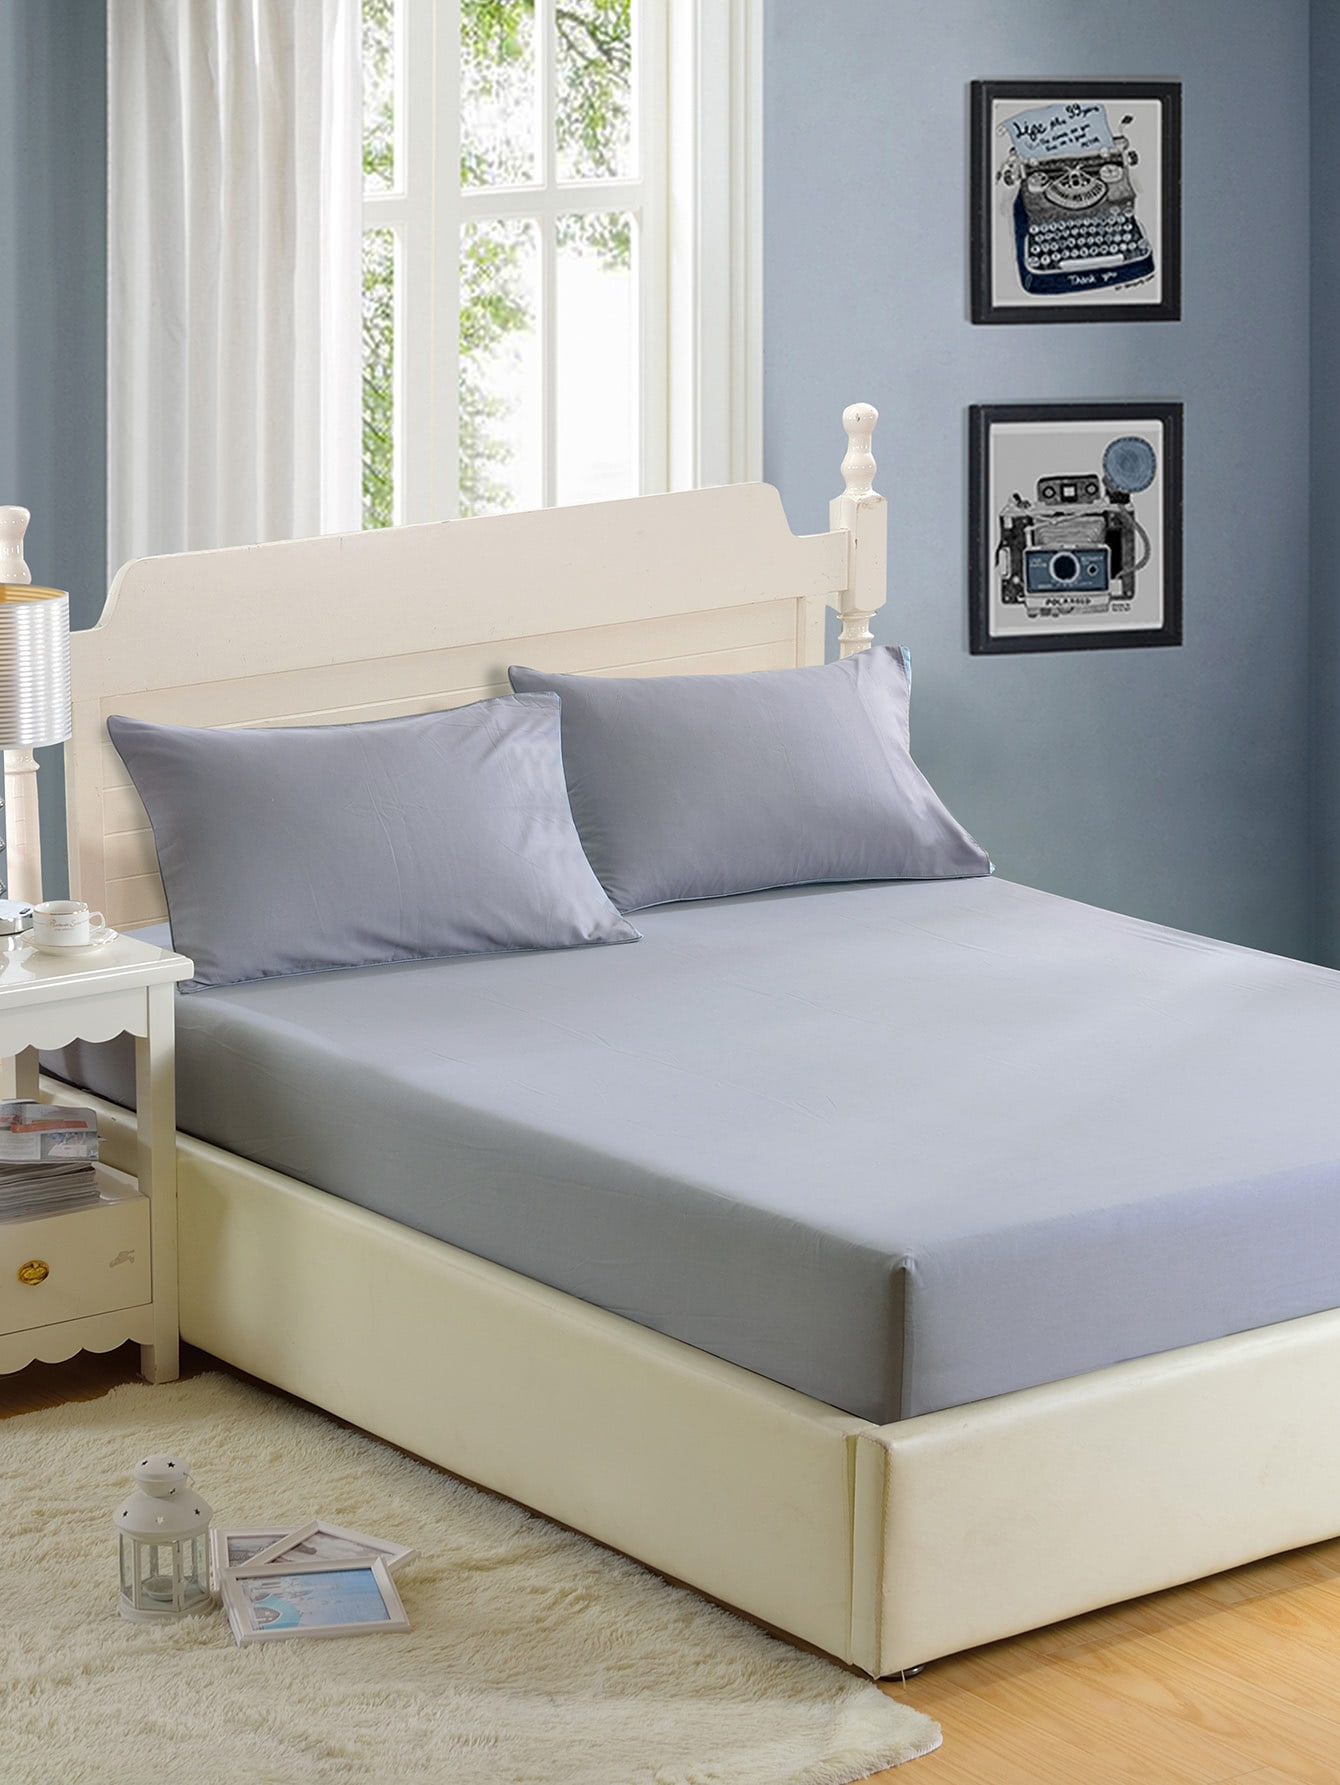 Simple Solid Full Covered Bed Cover Set бра leds c4 bed 05 2830 34 34